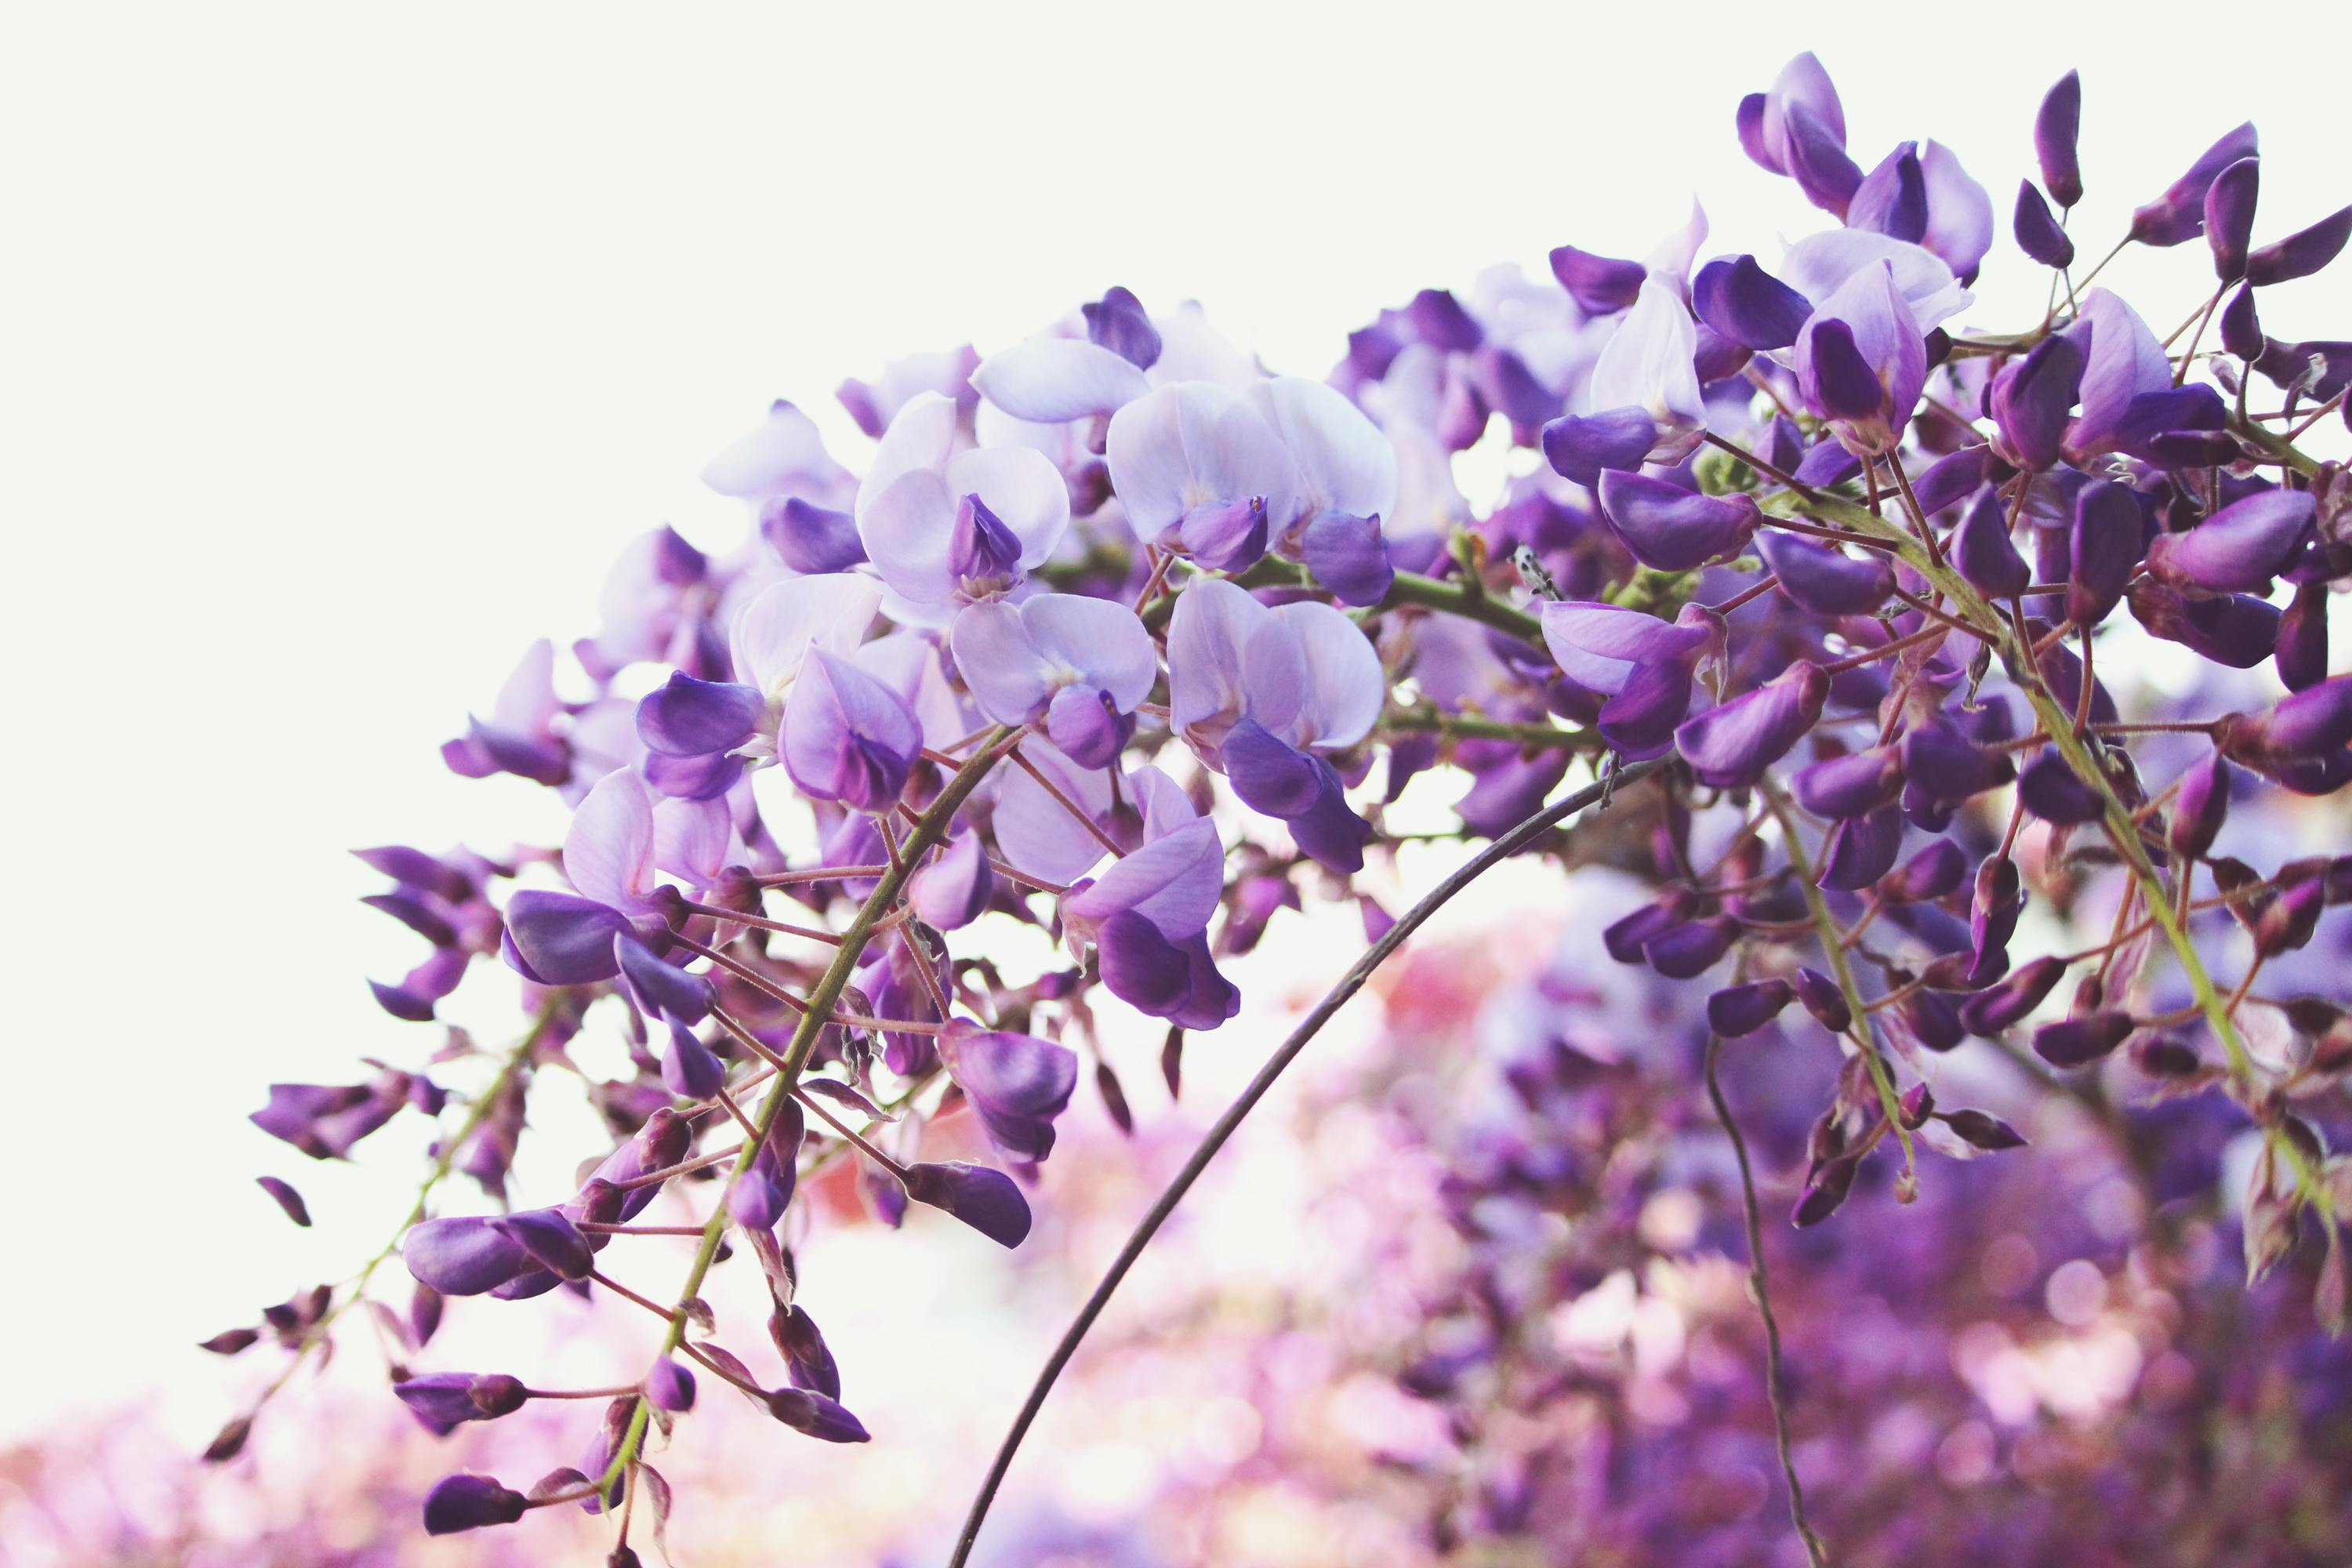 A City In Fukuoka Cuts Off The Wisteria Flowers From A 600 Year Old Tree To Discourage Visitors